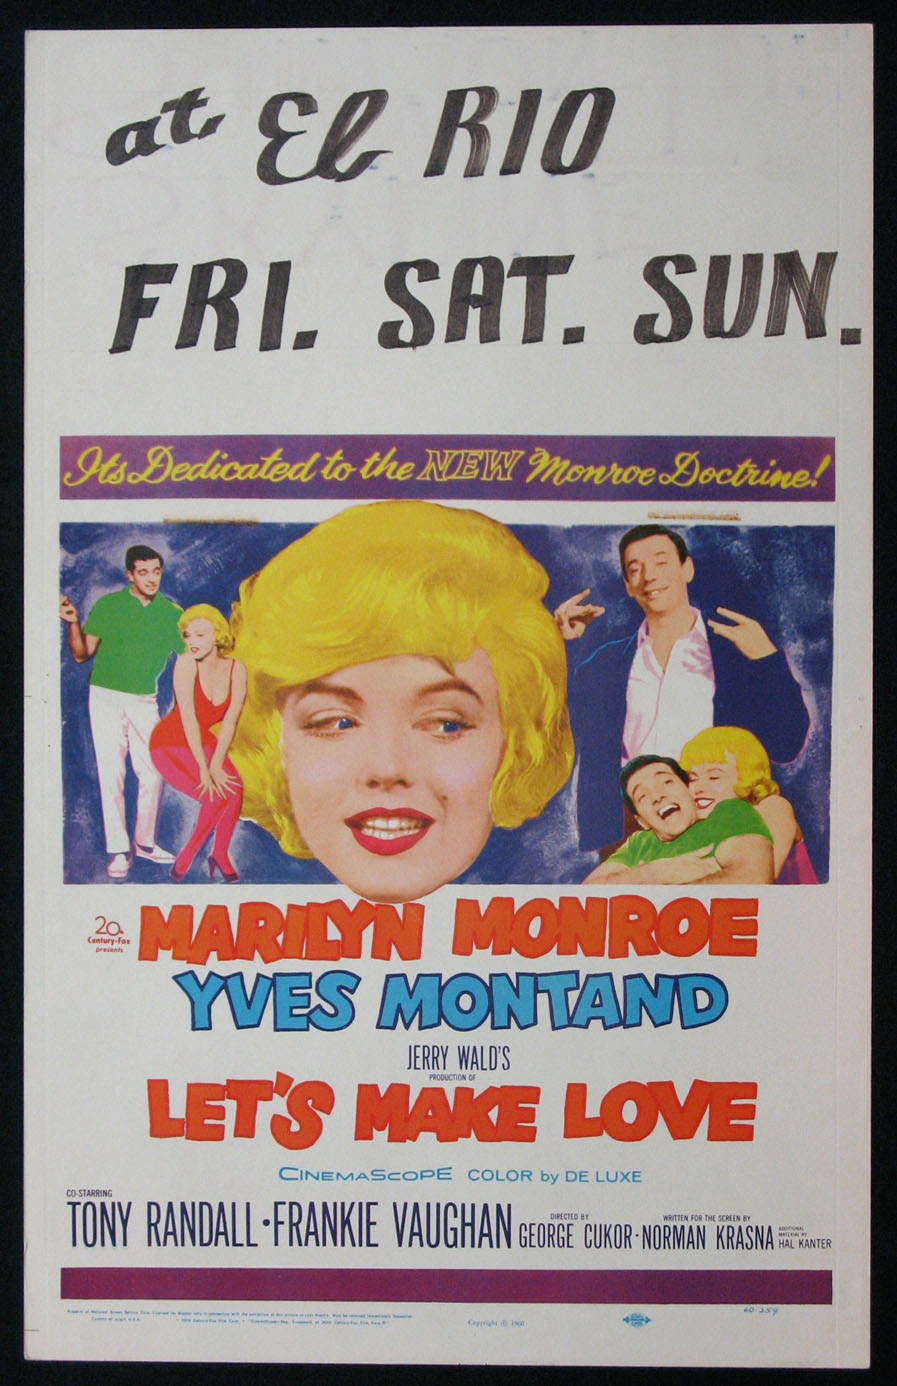 LET'S MAKE LOVE (Lets Make Love) @ FilmPosters.com